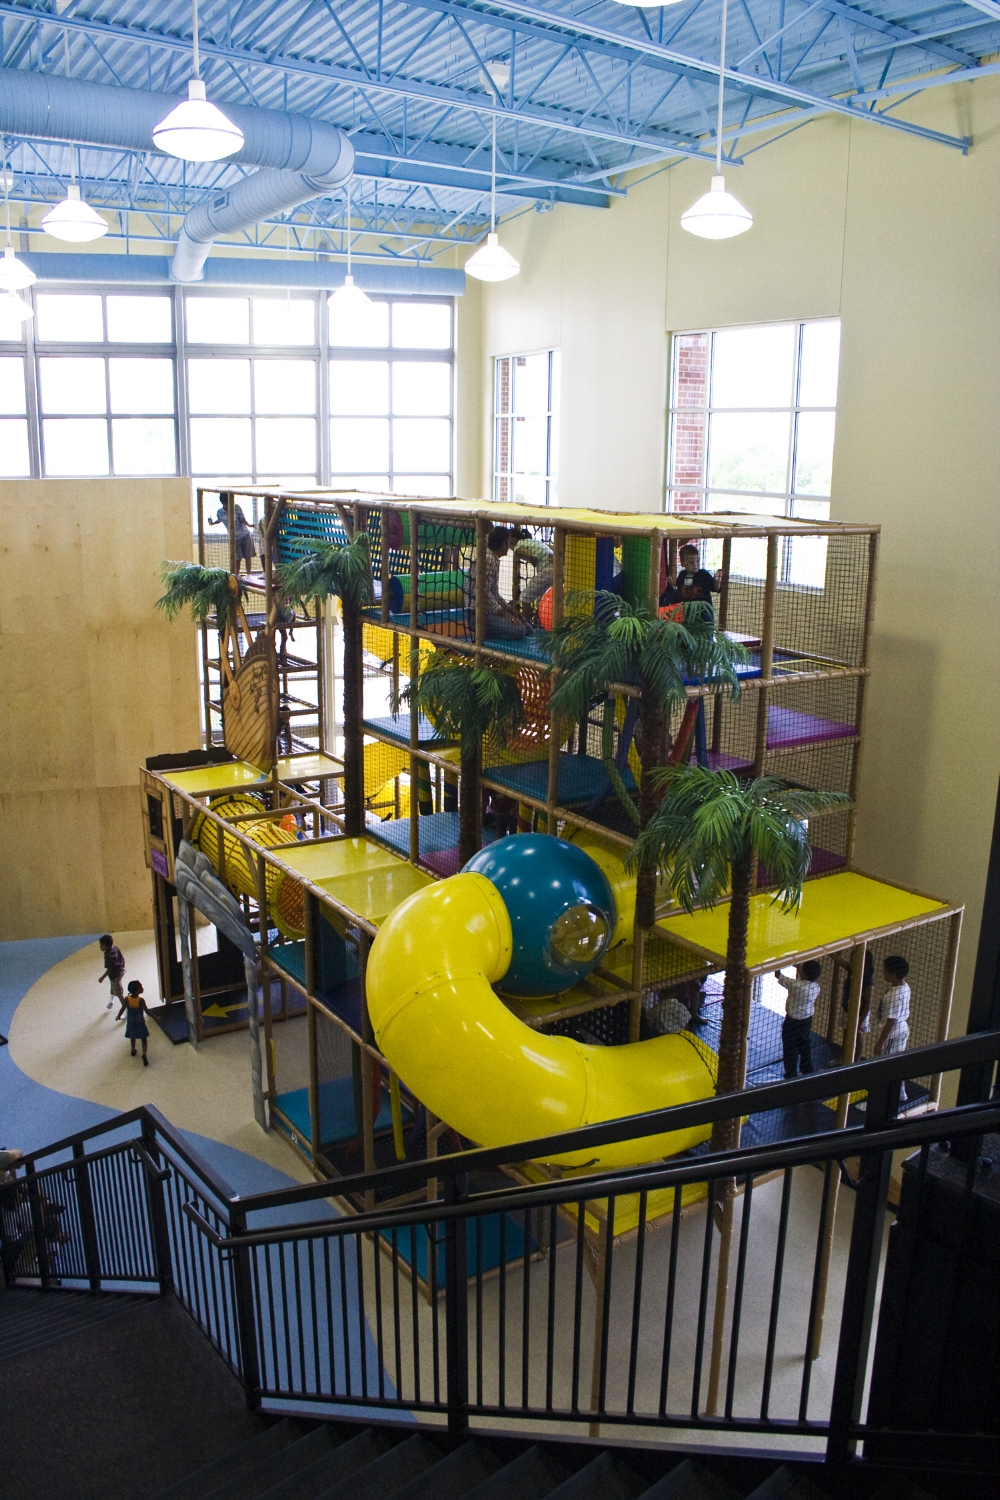 Playscape.jpg